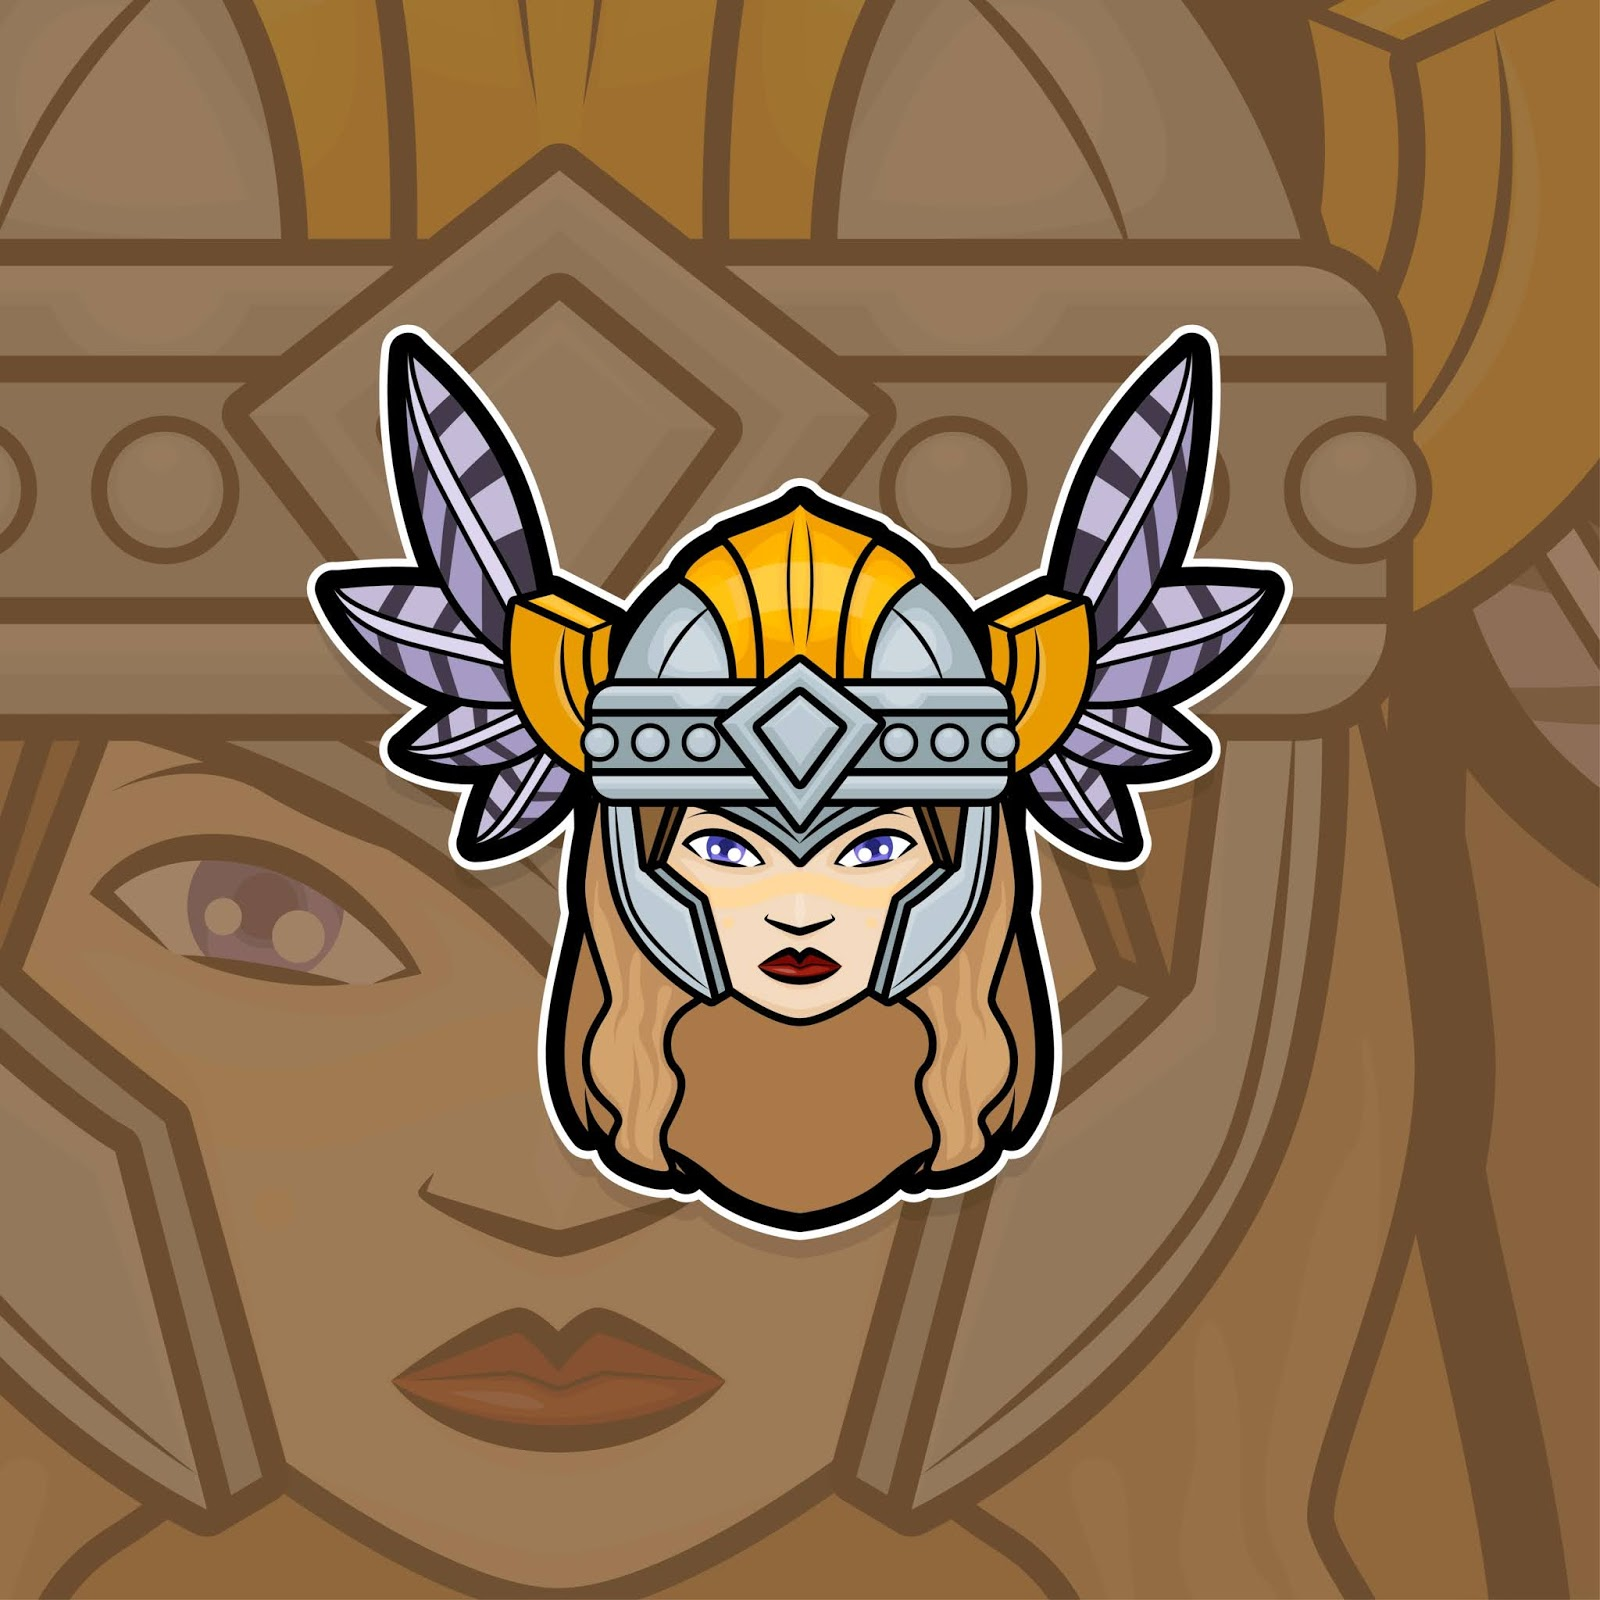 Esport Gamer Logo Freya Free Download Vector CDR, AI, EPS and PNG Formats